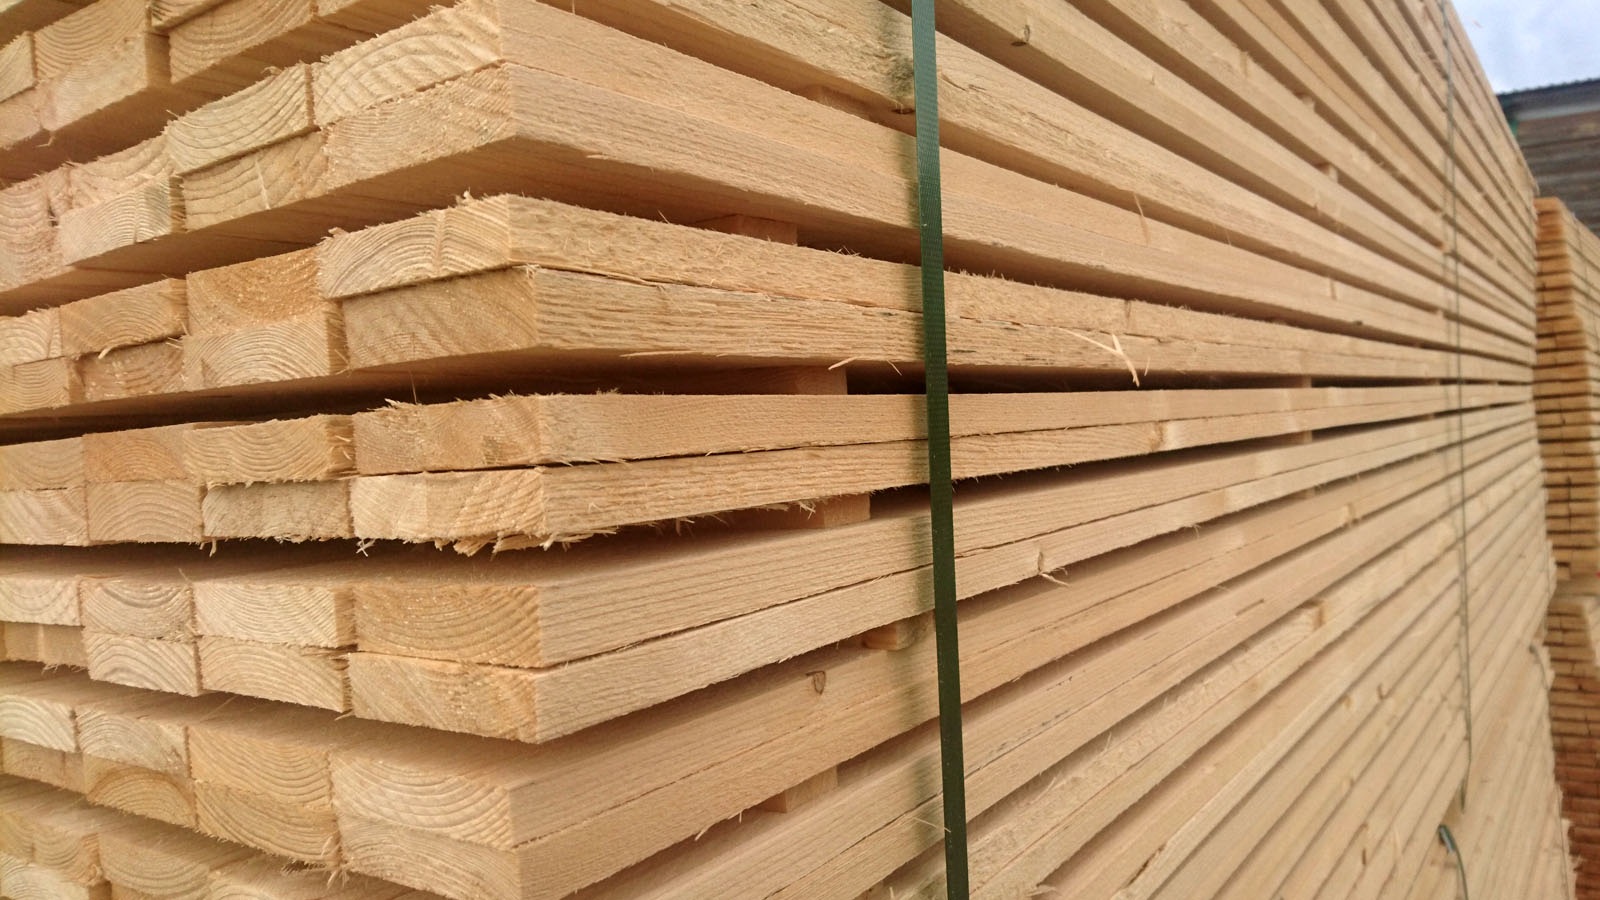 4-side-boards-nothern-europe-timber-production-lameko-impex